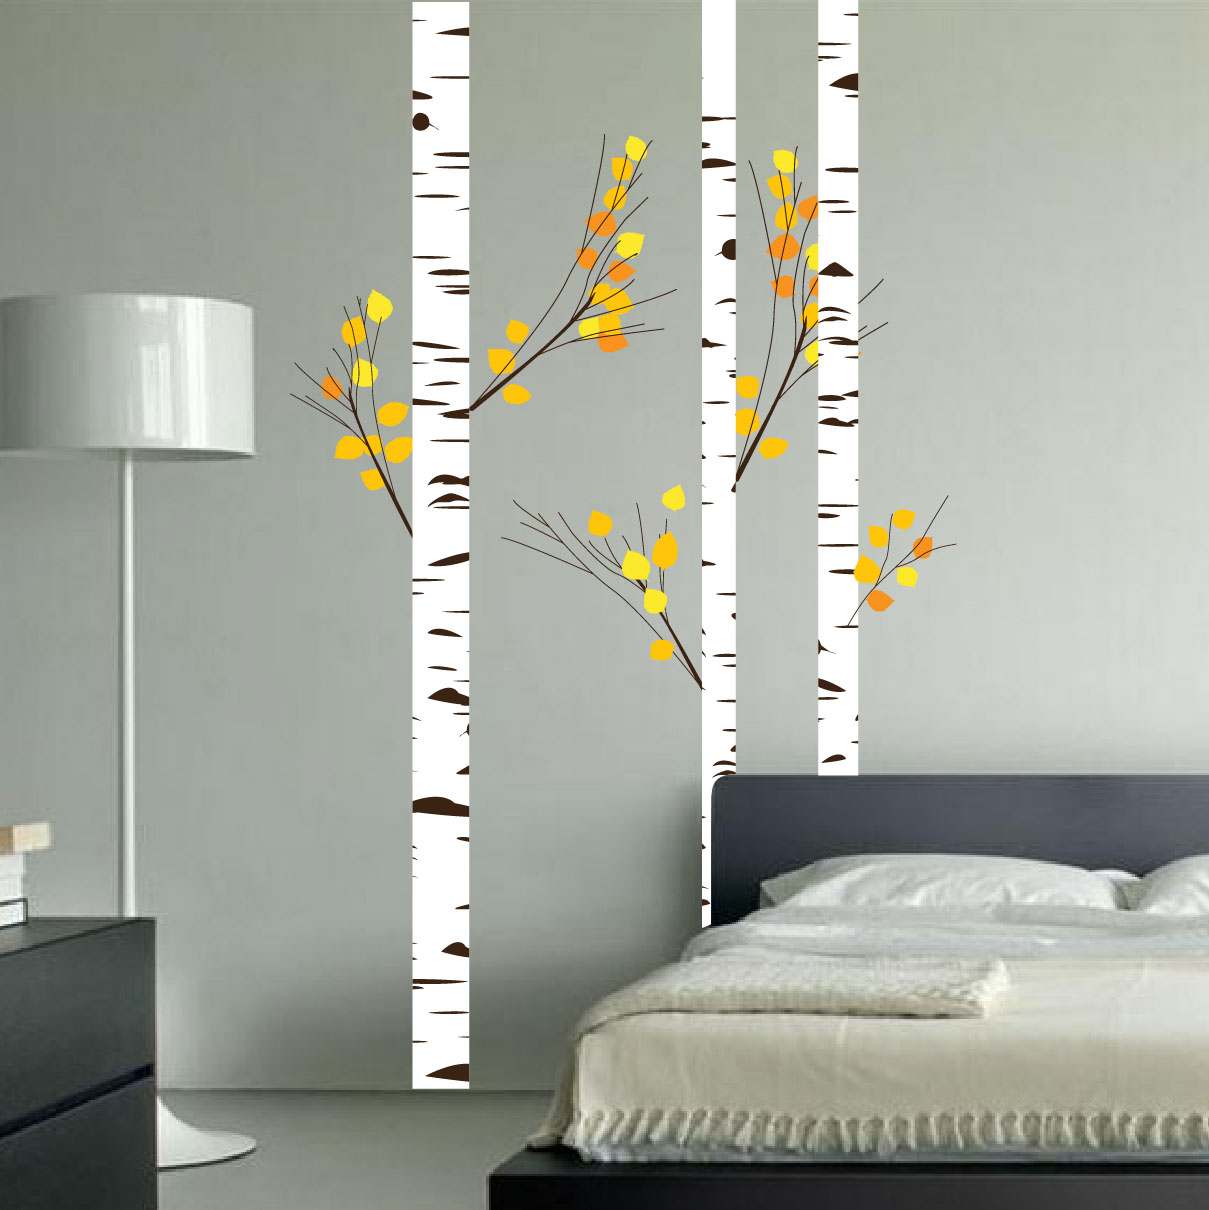 1273-birch-tree-wall-bedroom-decal.jpg